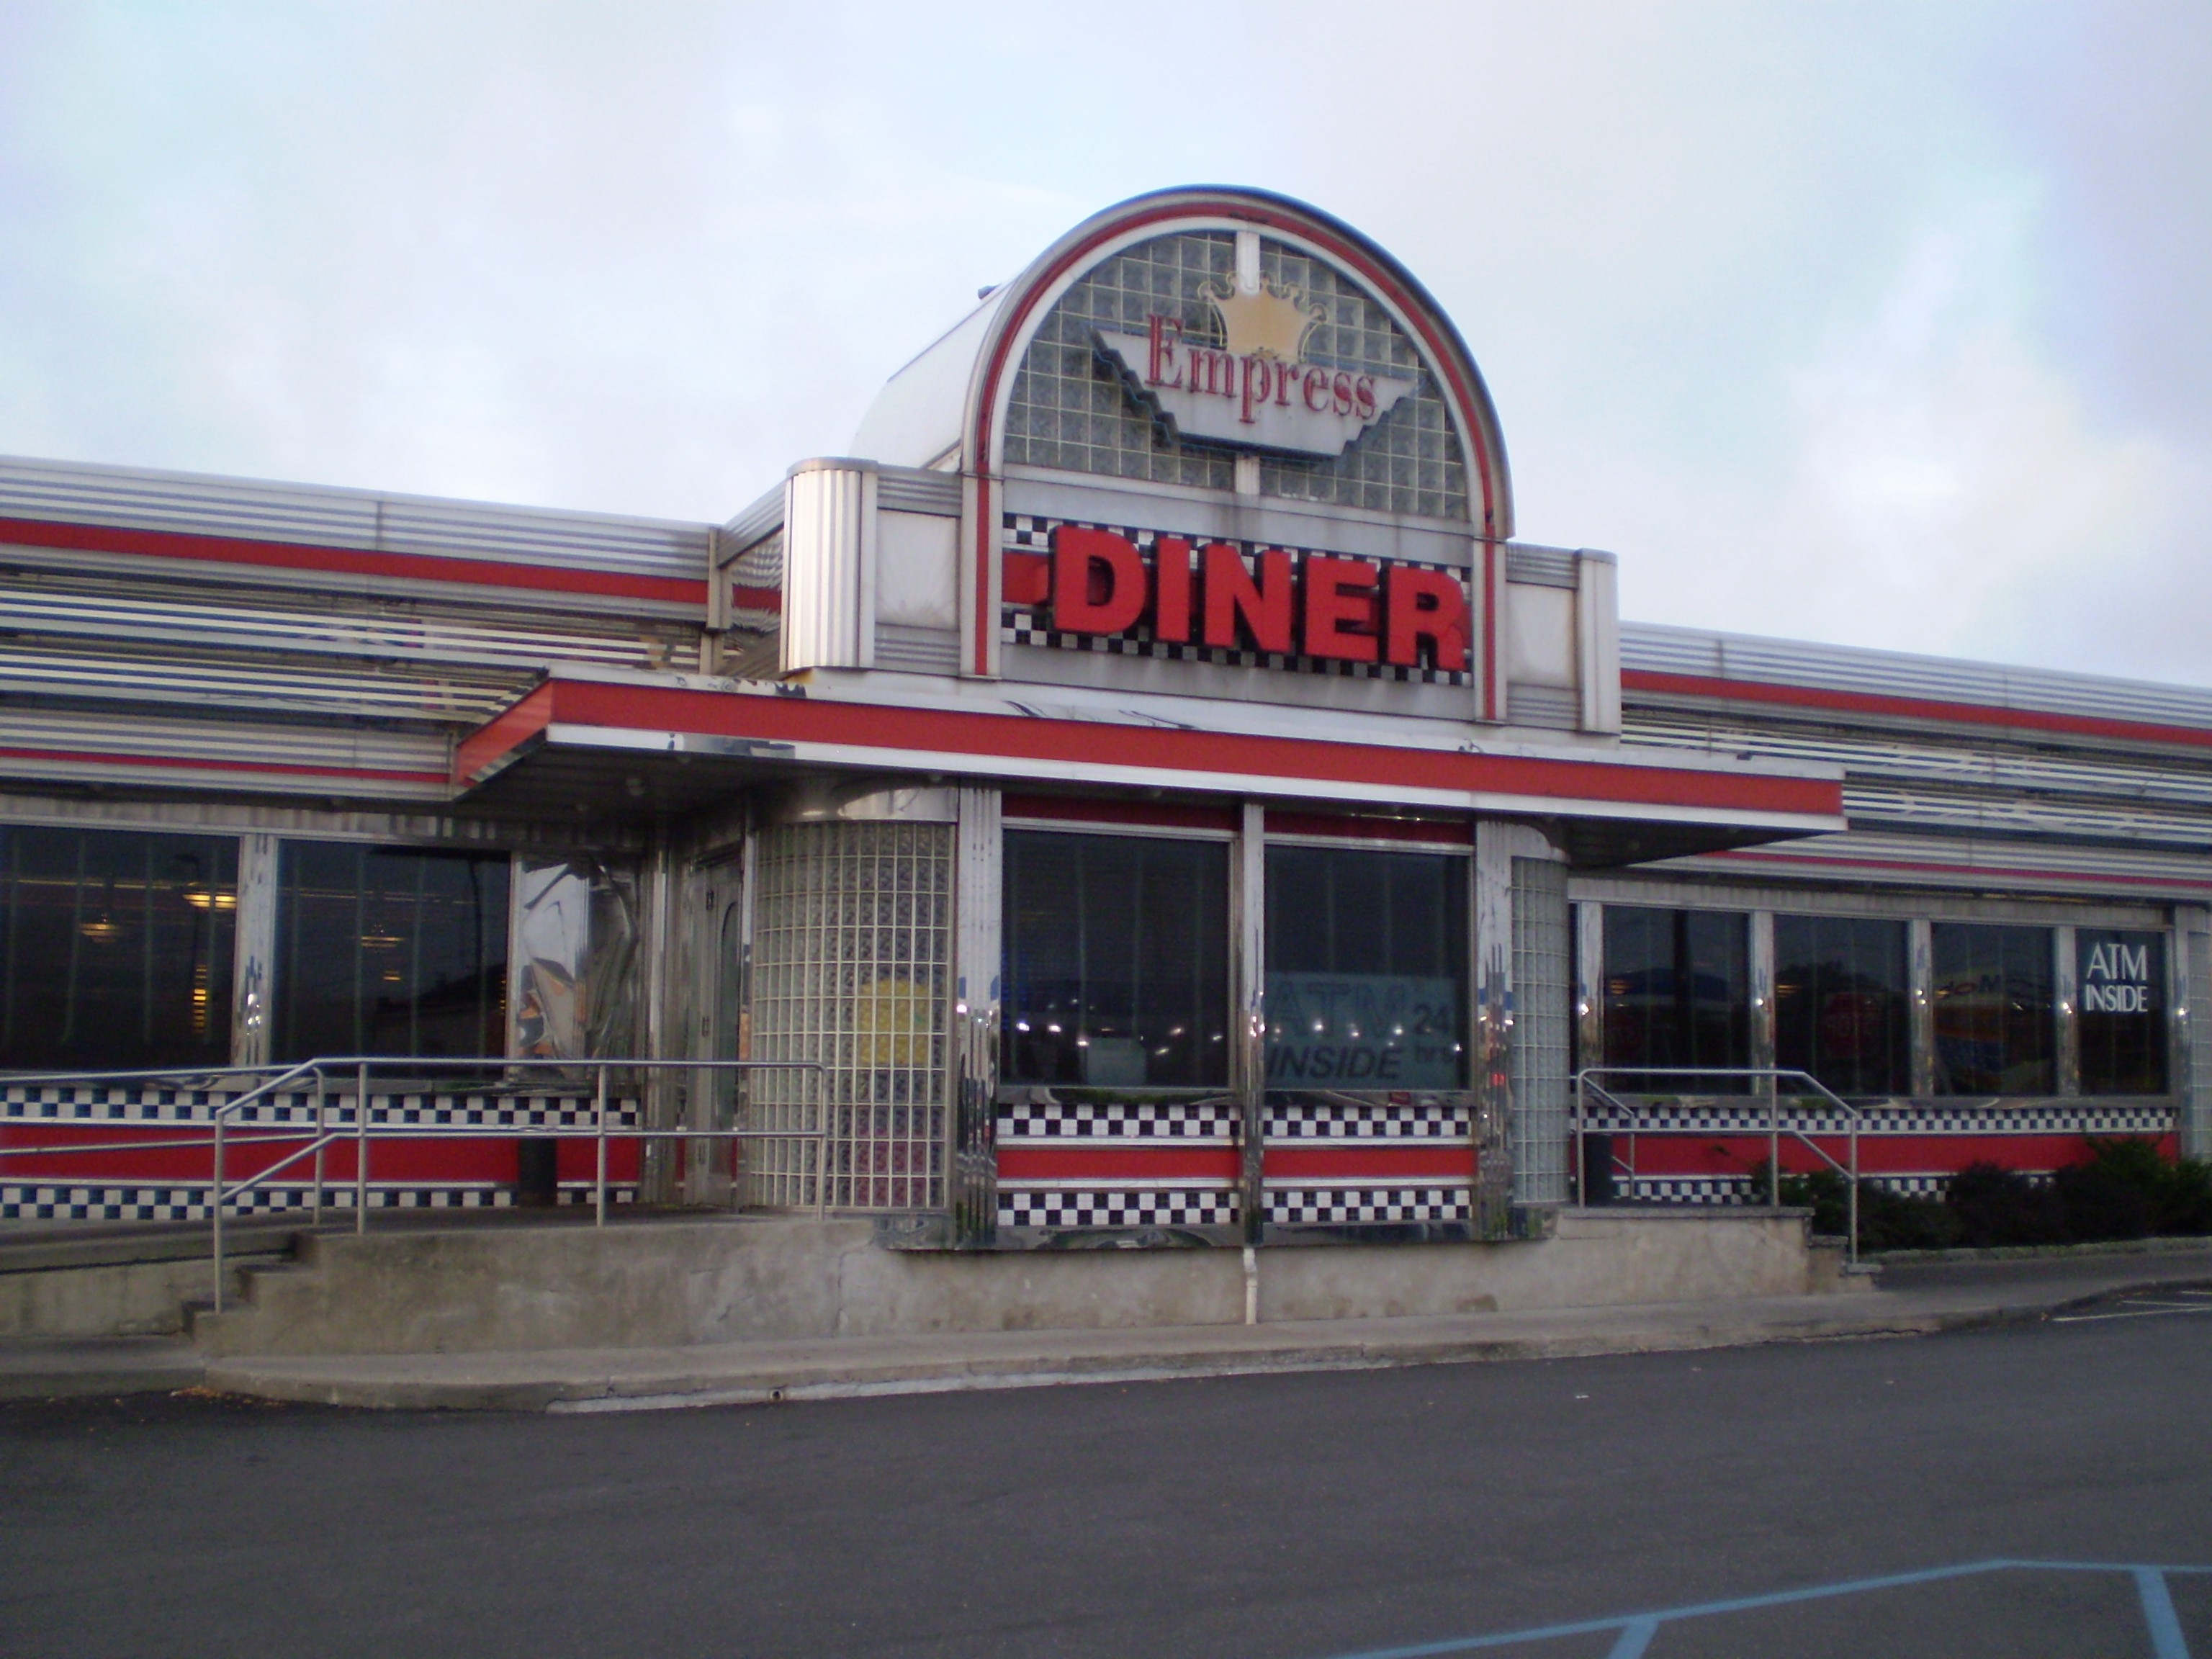 There Used To Be A Diner Here - Michele Catalano - Medium